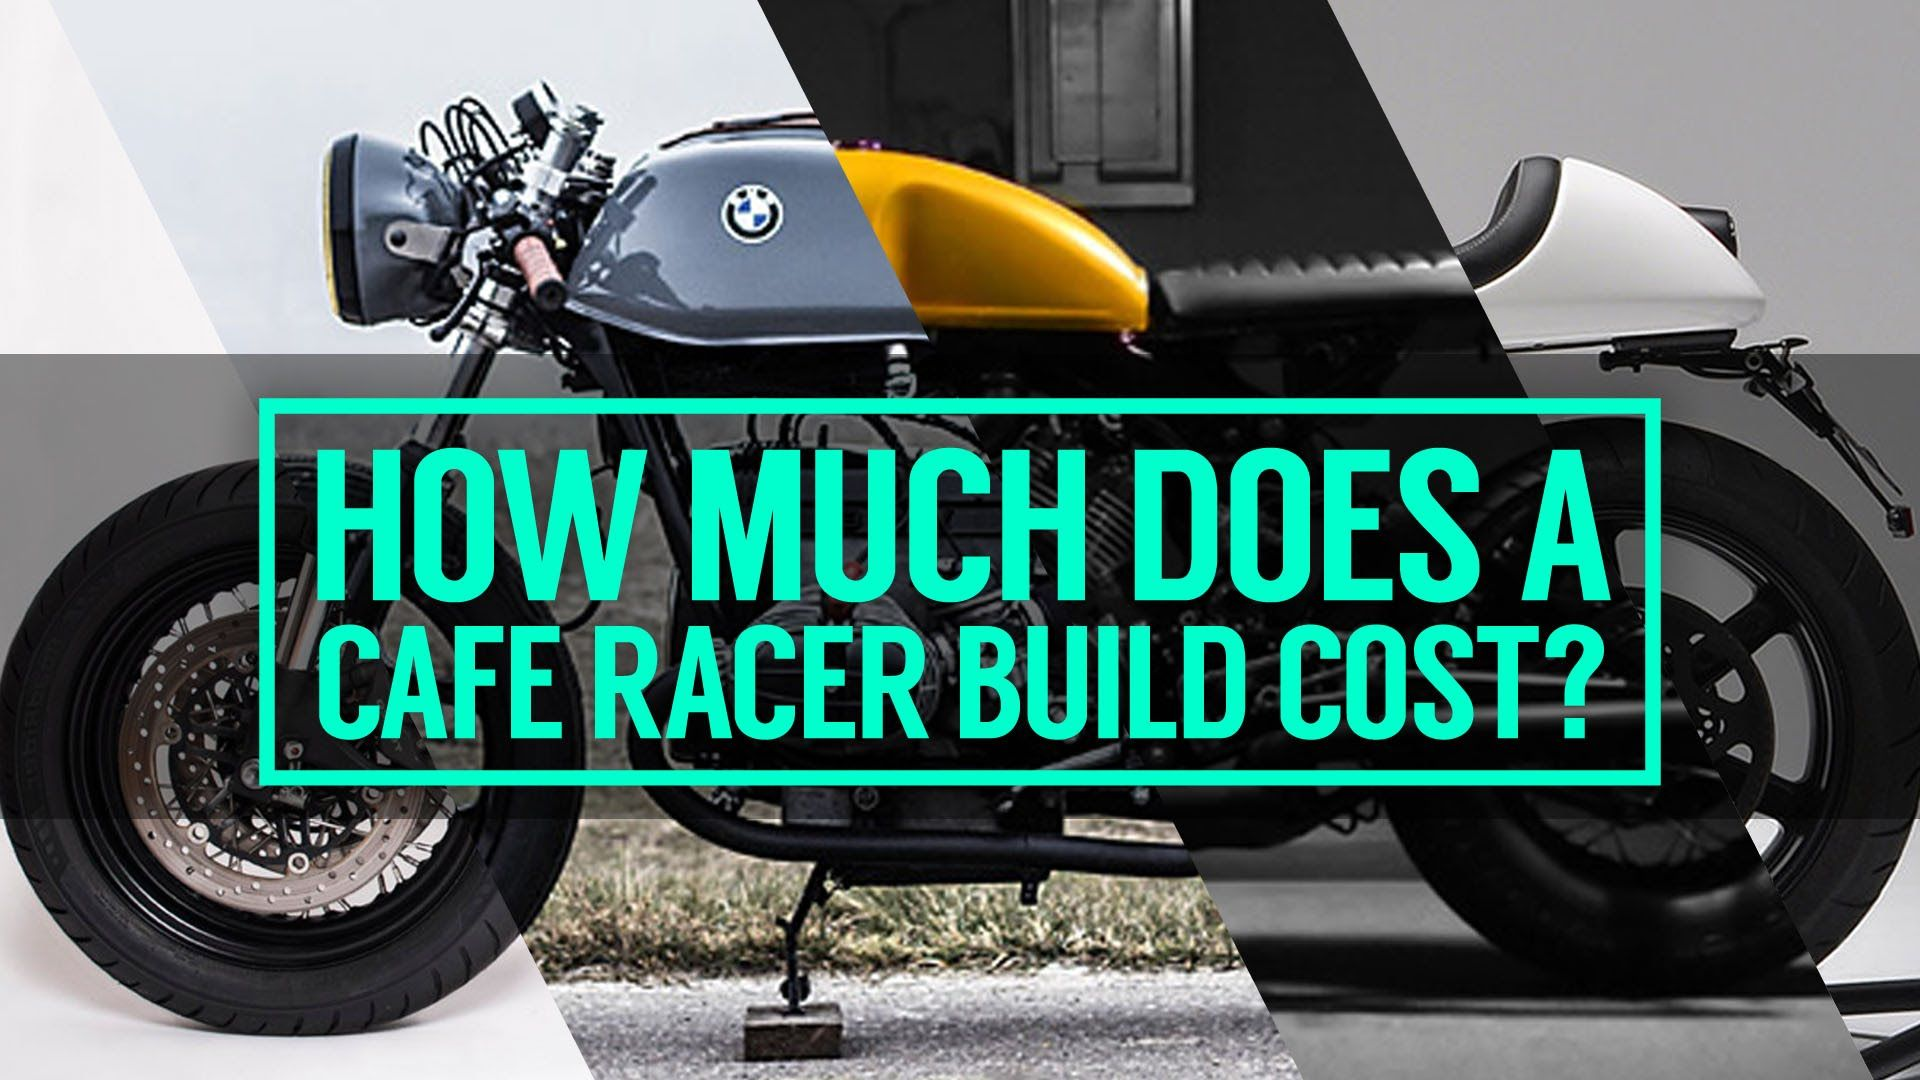 how much does it cost to build a cafe racer motorcycle motorcycles cafe racer motorcycle. Black Bedroom Furniture Sets. Home Design Ideas